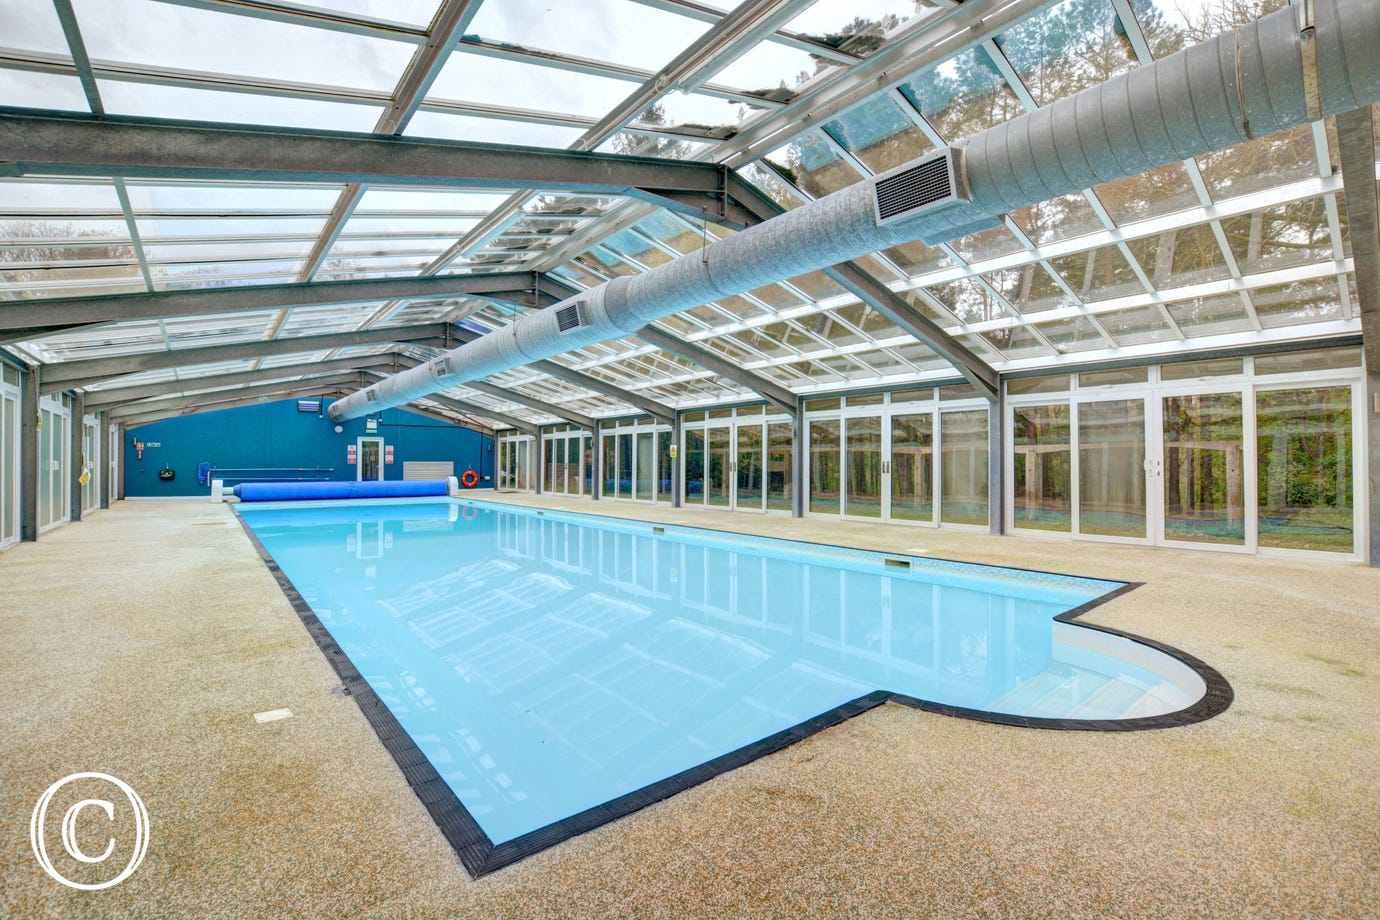 Pack your goggles and enjoy use of the heated indoor swimming pool